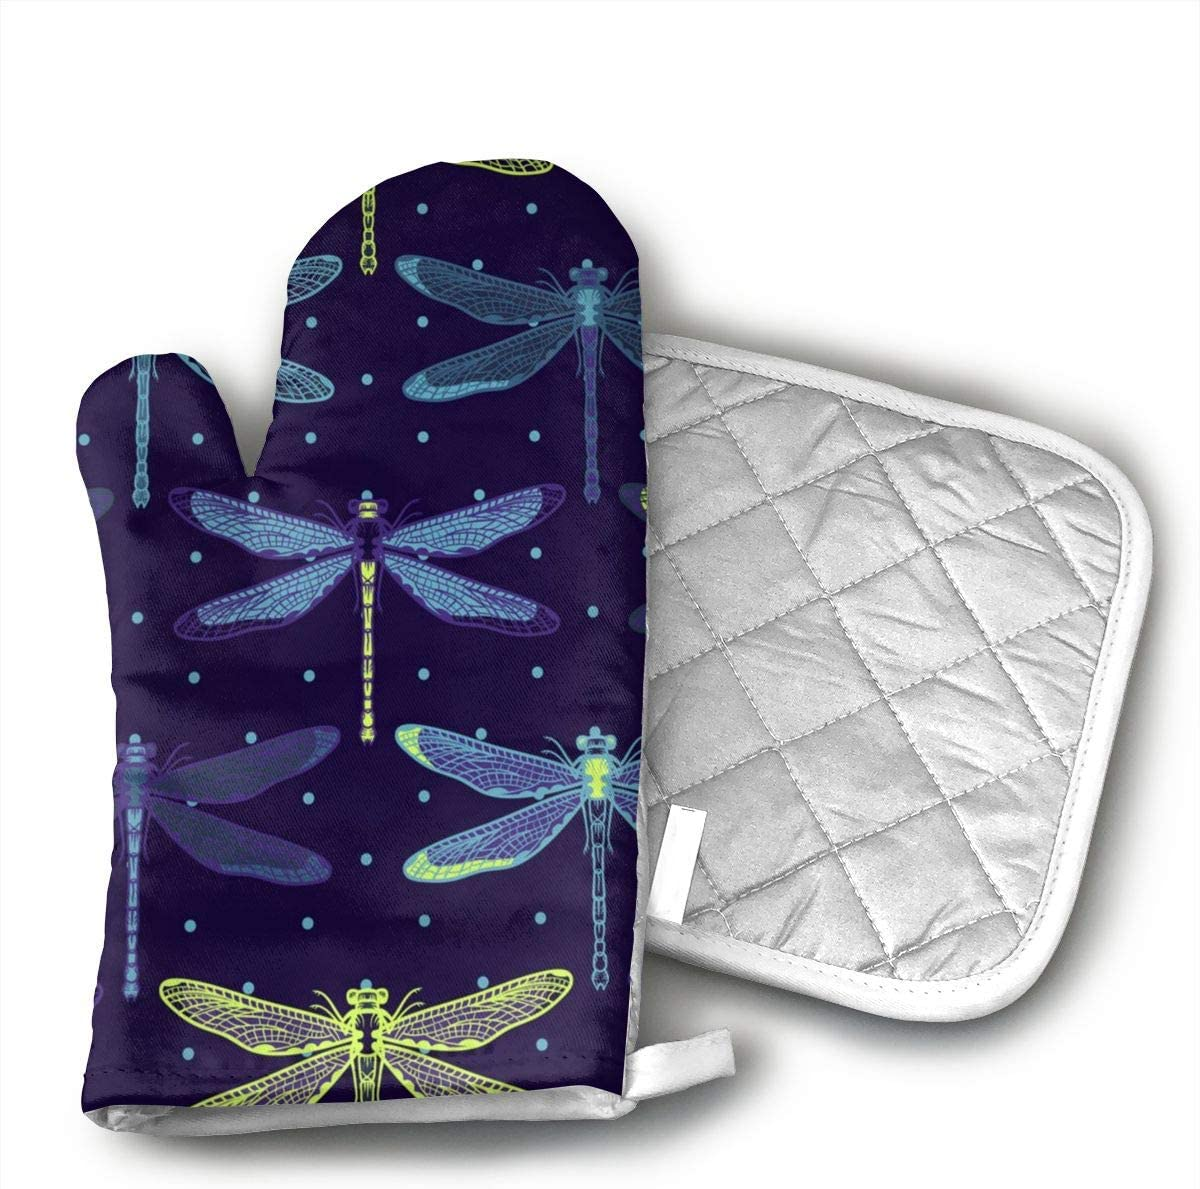 Wiqo9 Hand Drawn Stylized Dragonflies Pattern Oven Mitts and Pot Holders Kitchen Mitten Cooking Gloves,Cooking, Baking, BBQ.